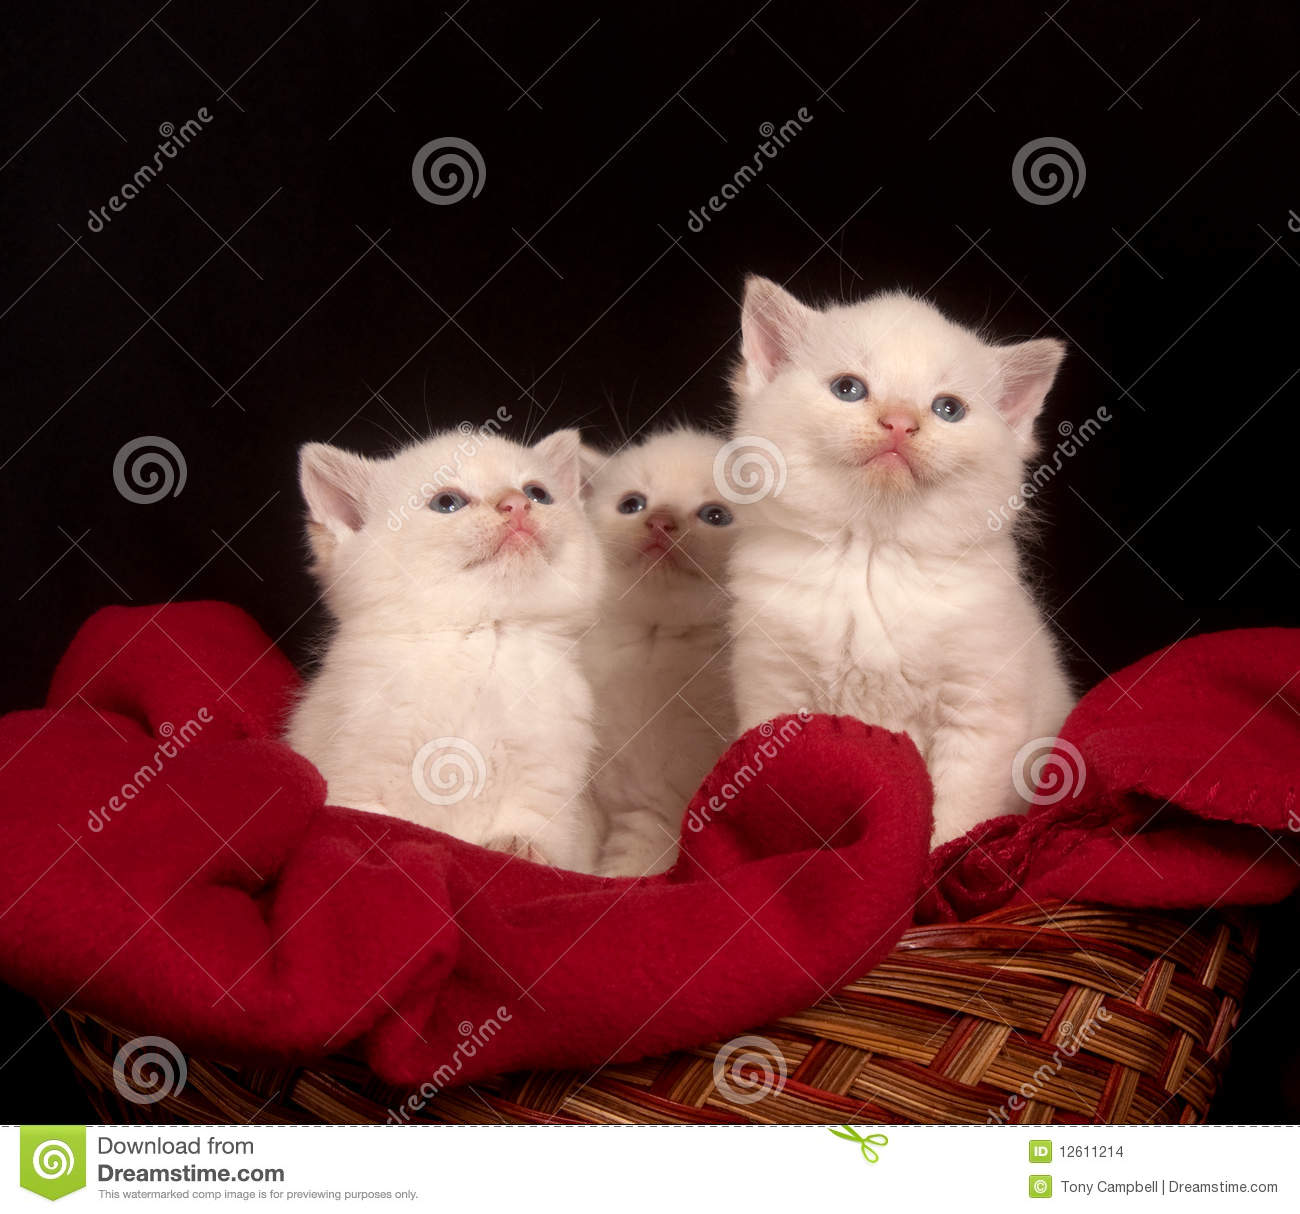 Three White Kittens In A Basket Stock Images - Image: 12611214